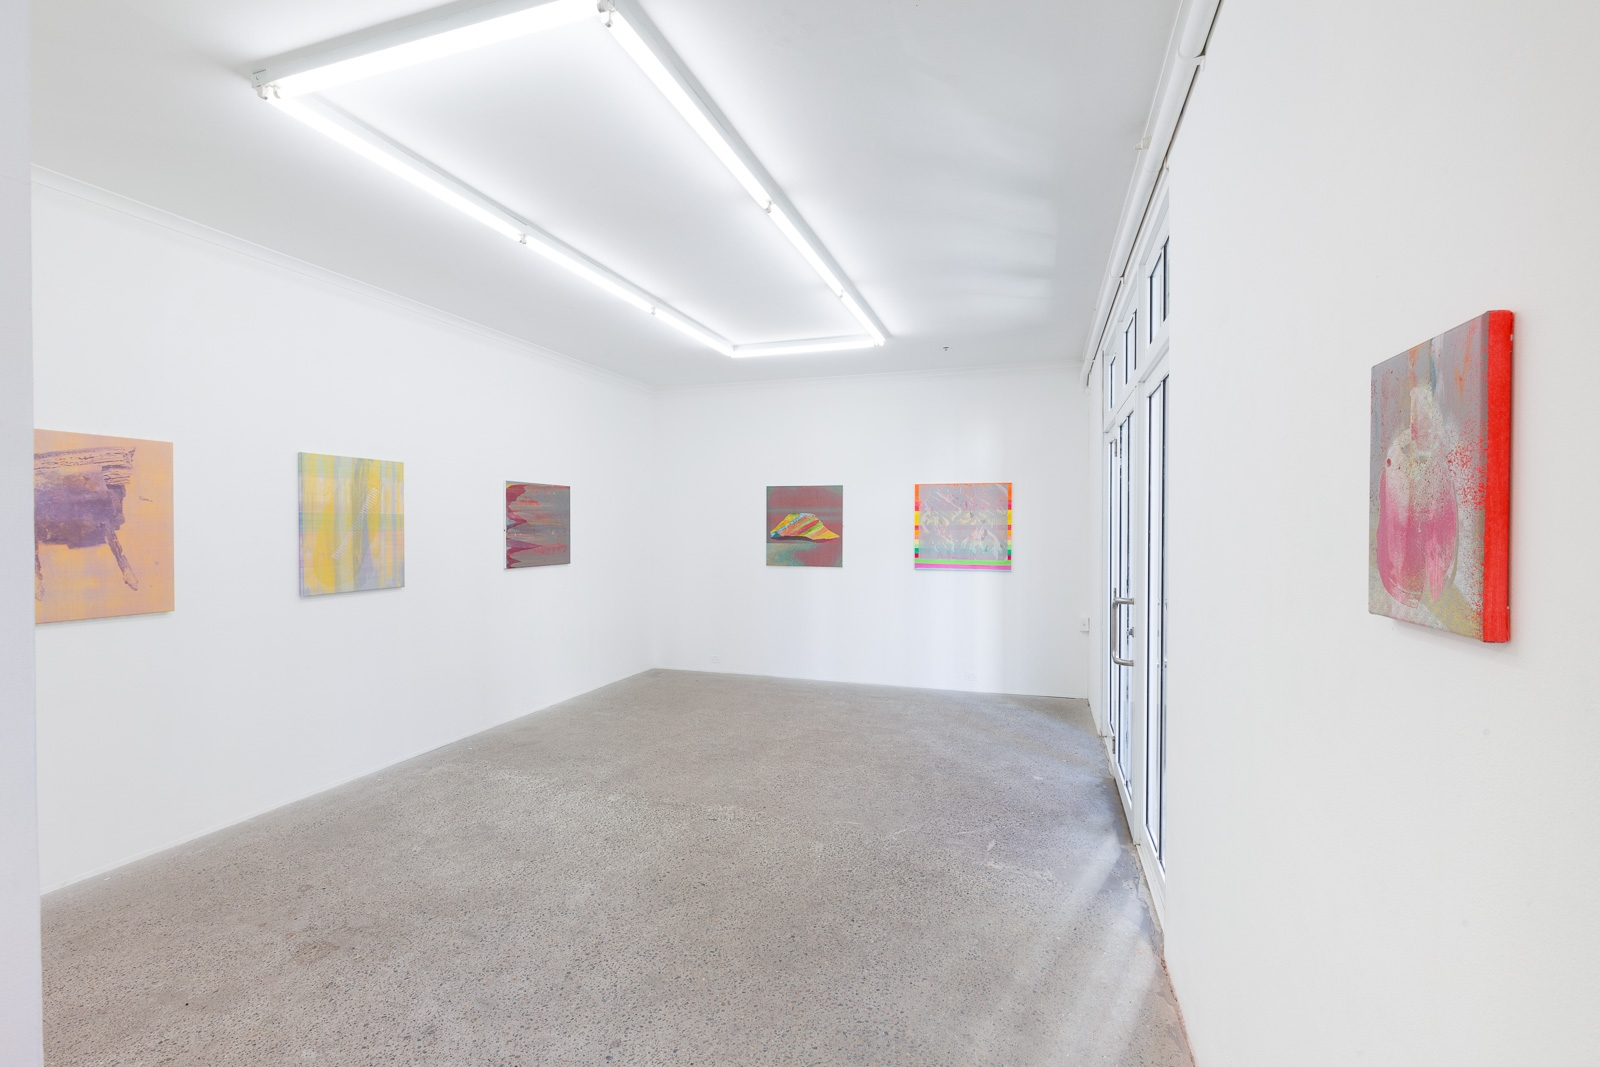 James Lieutenant, Supergods, installation view. Photo: Docqment image